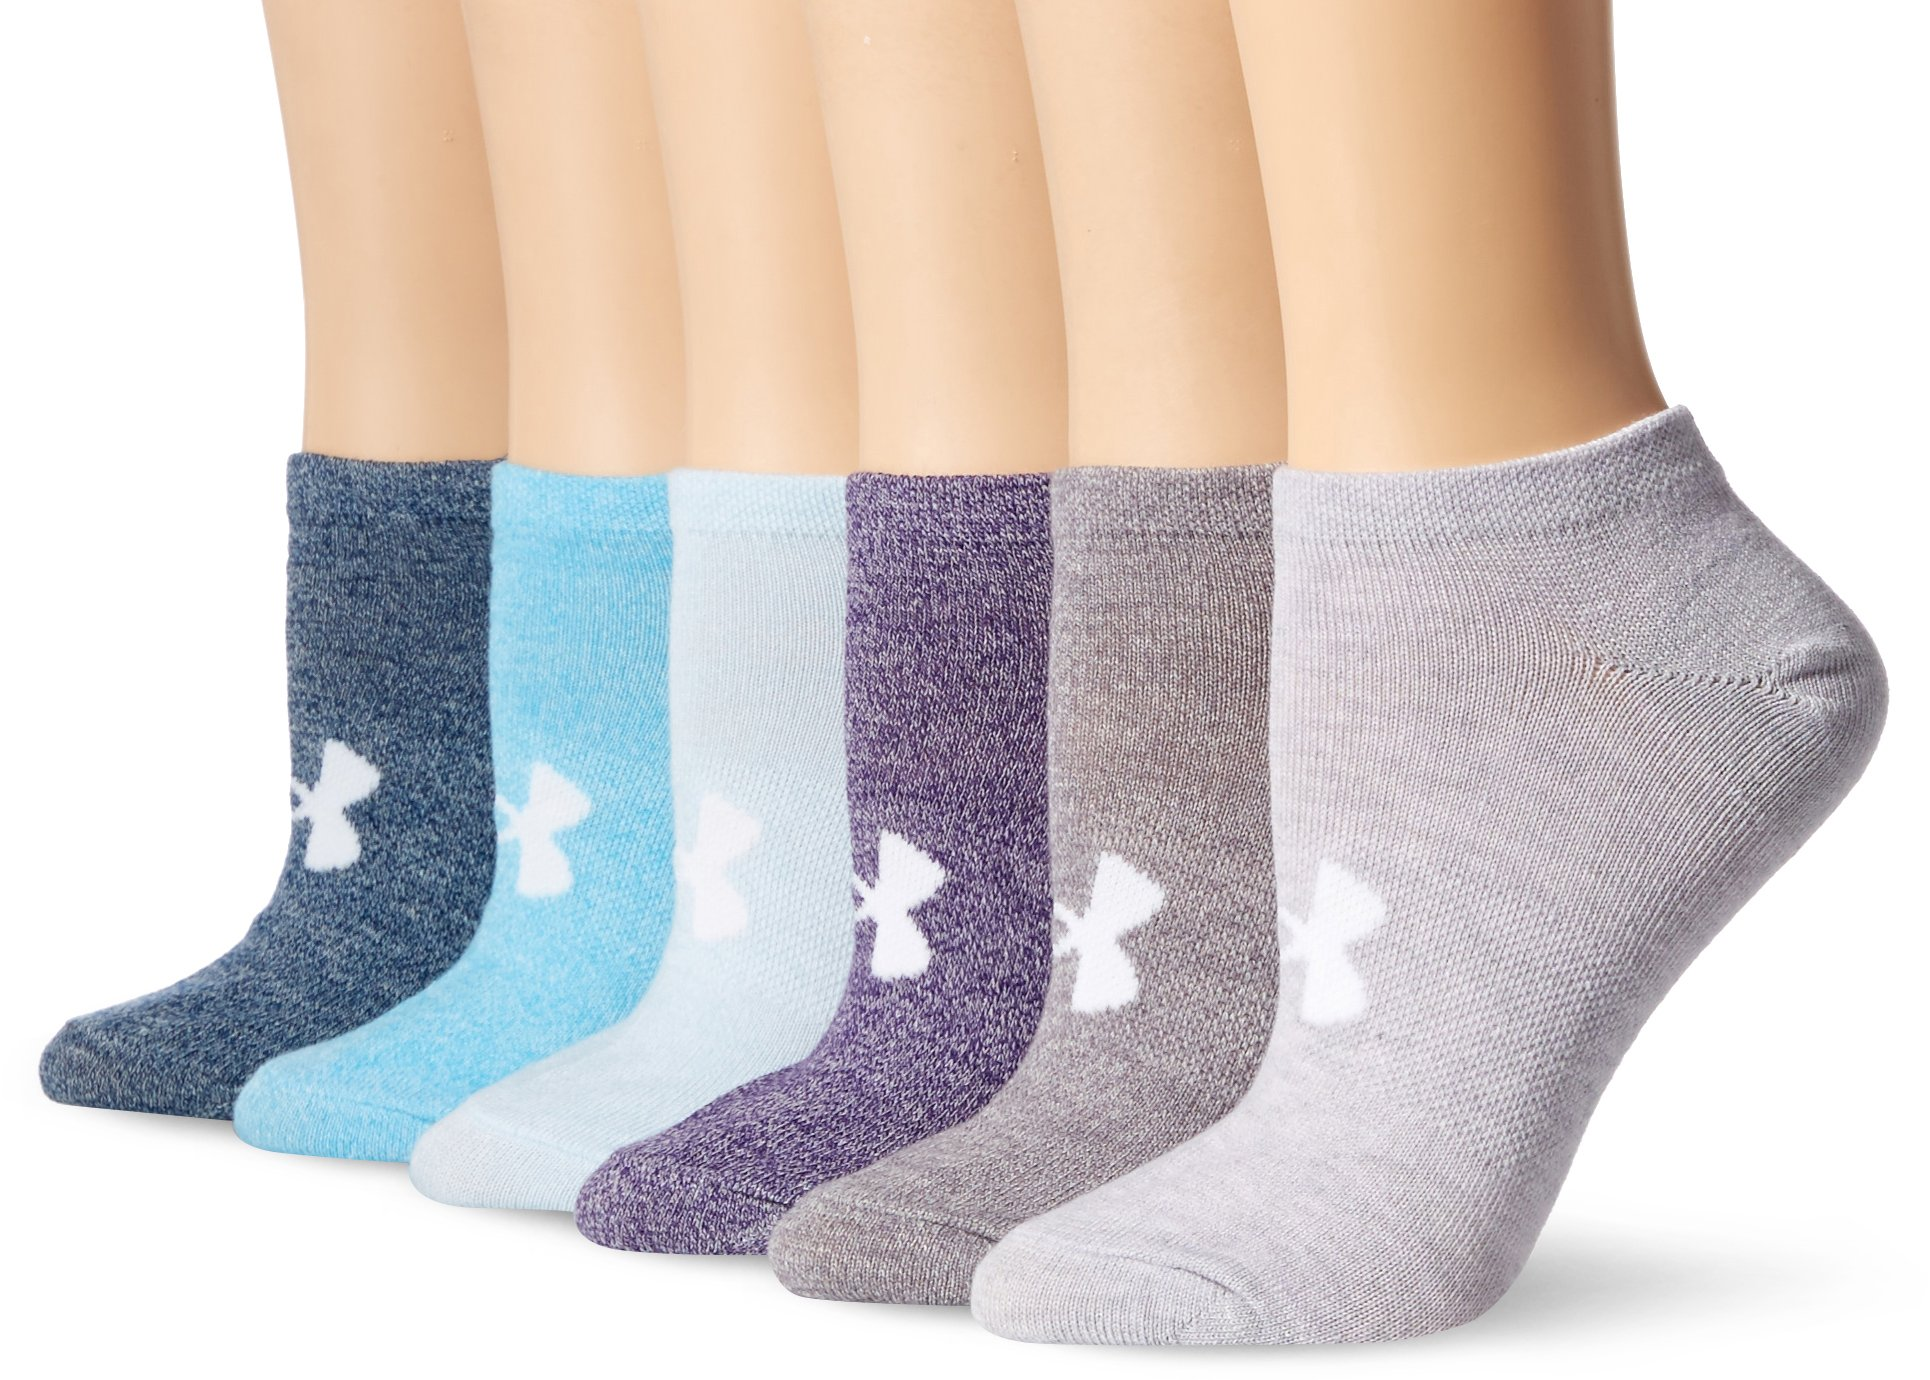 Under Armour Essential No-Show Liner Socks (6 Pairs), Purple Heather/Assorted, Shoe Size: Womens 6-9 by Under Armour